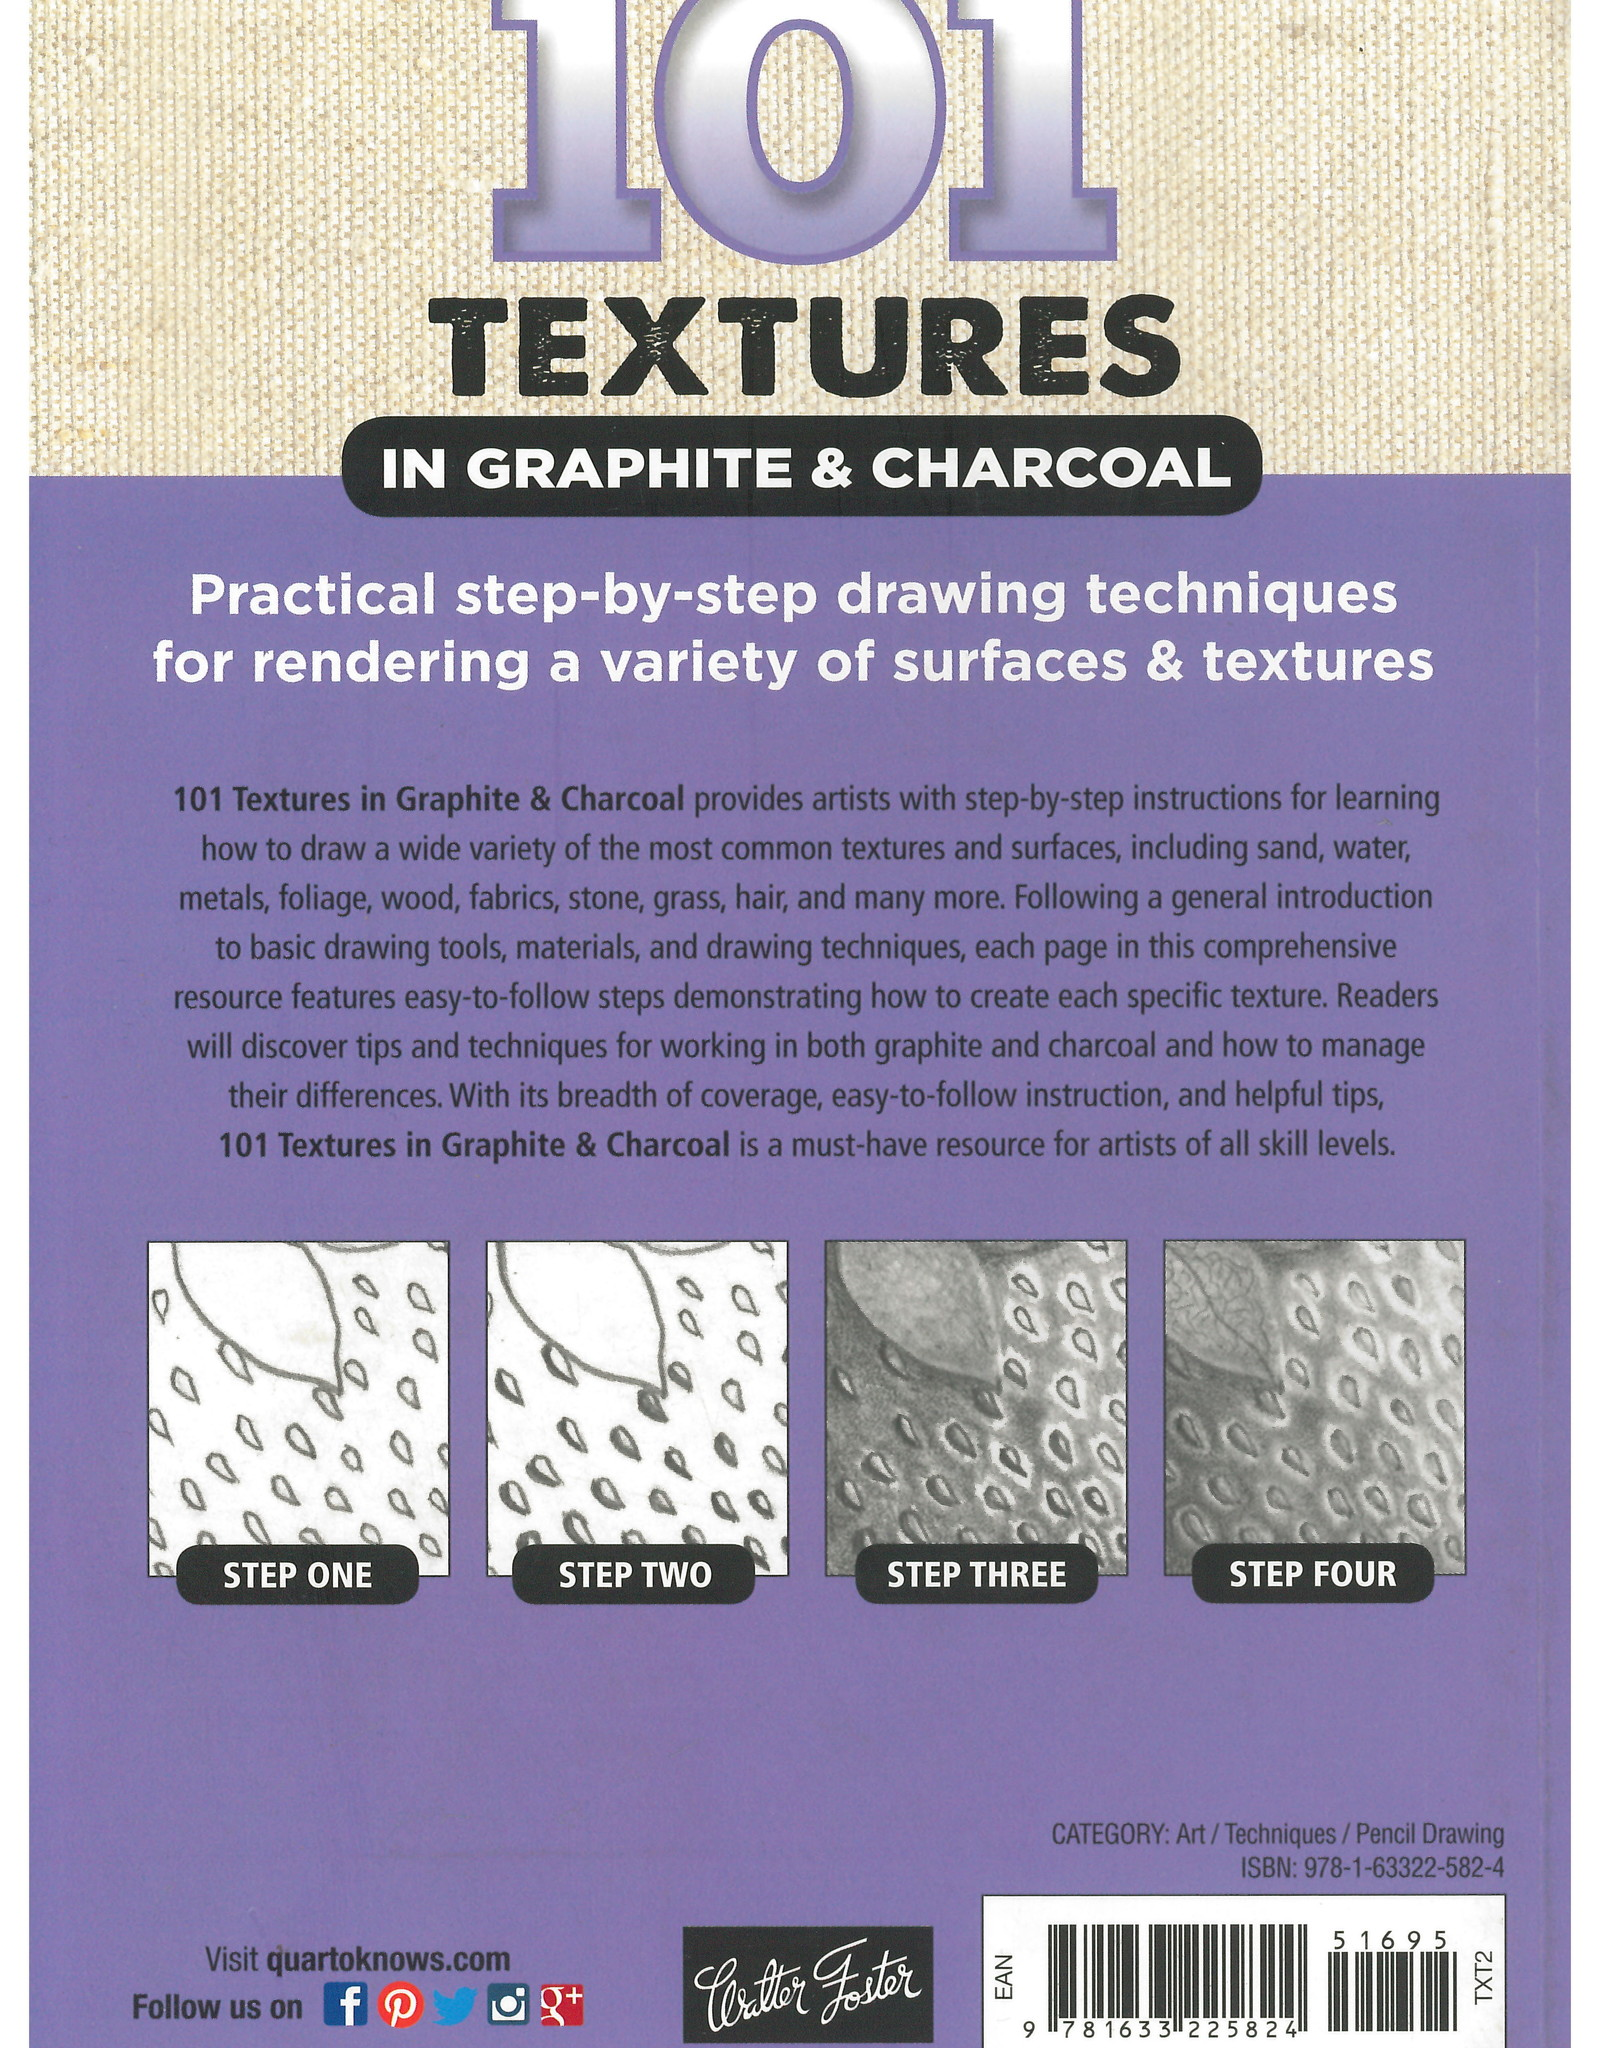 101 Textures in Graphite & Charcoal / Steven Pearce